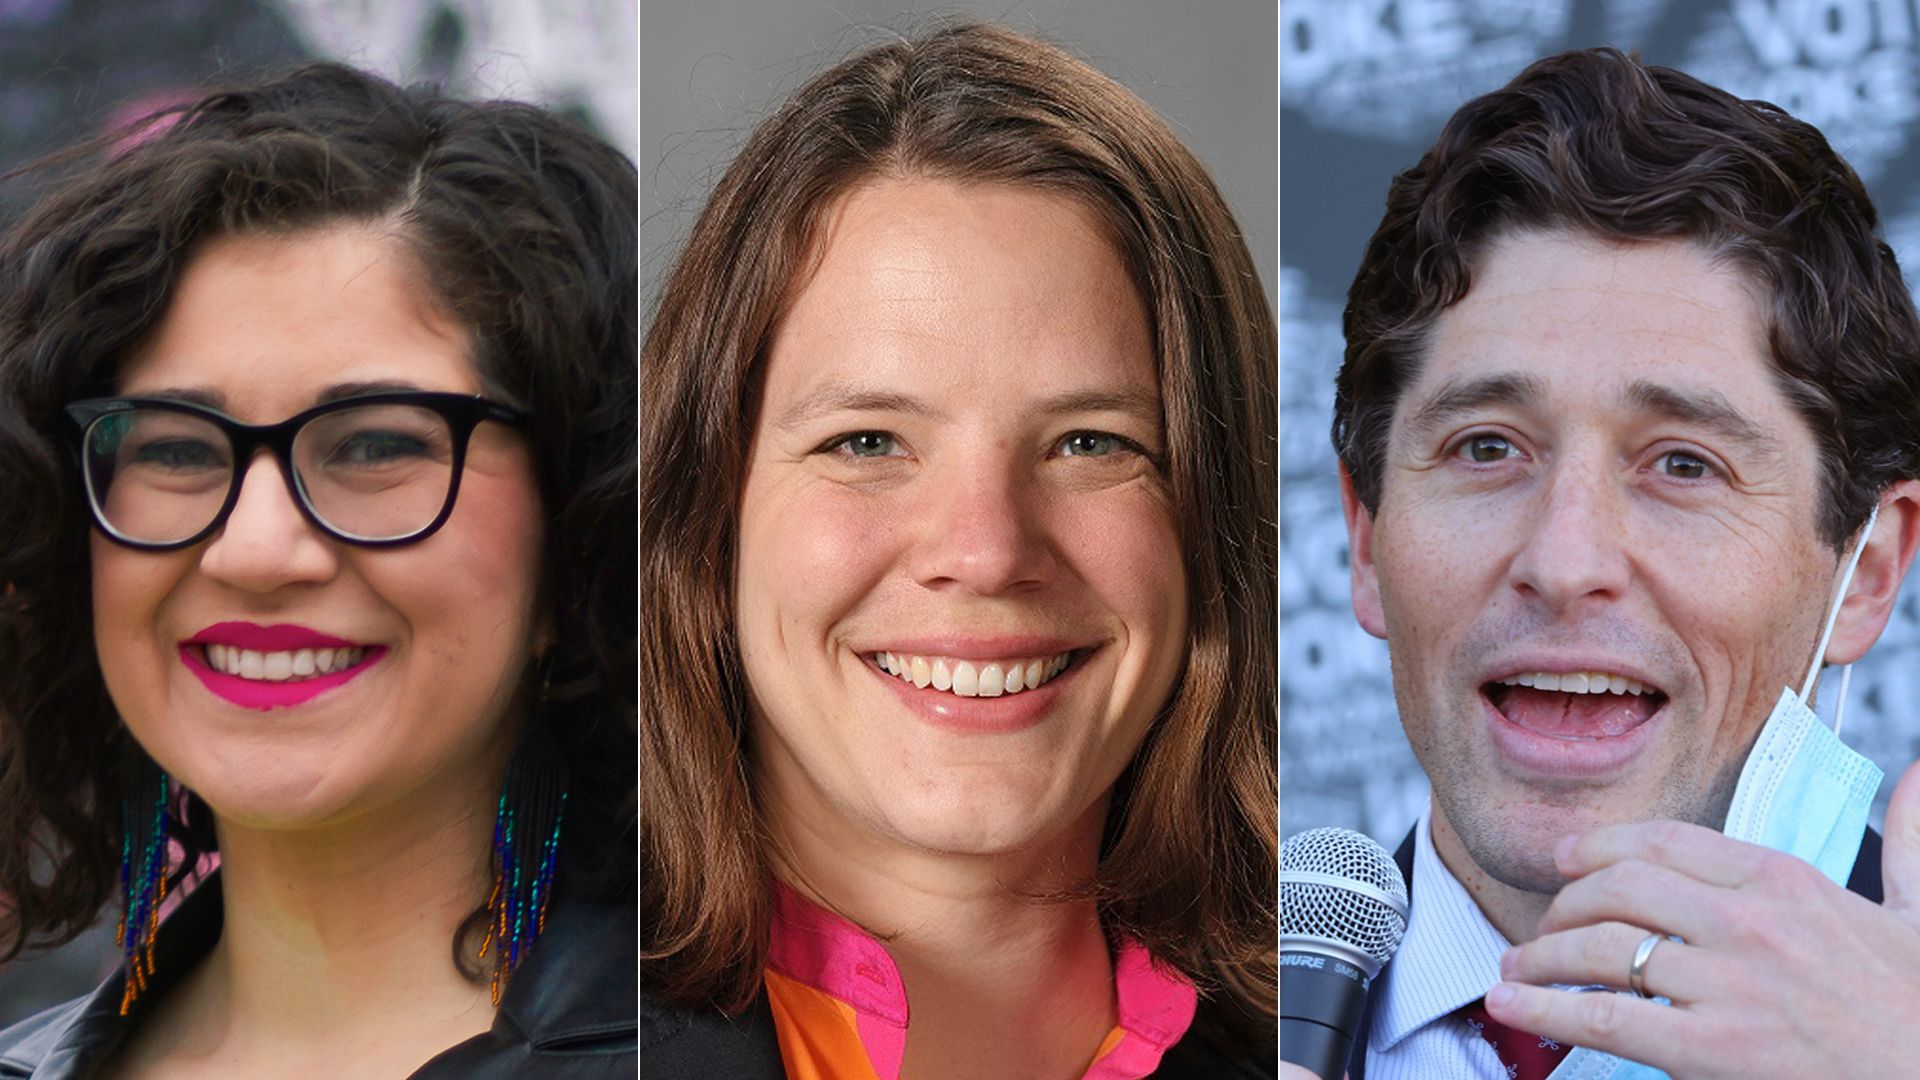 Sheila Nezhad (left) and Kate Knuth (center) are challenging Minneapolis Mayor Jacob Frey